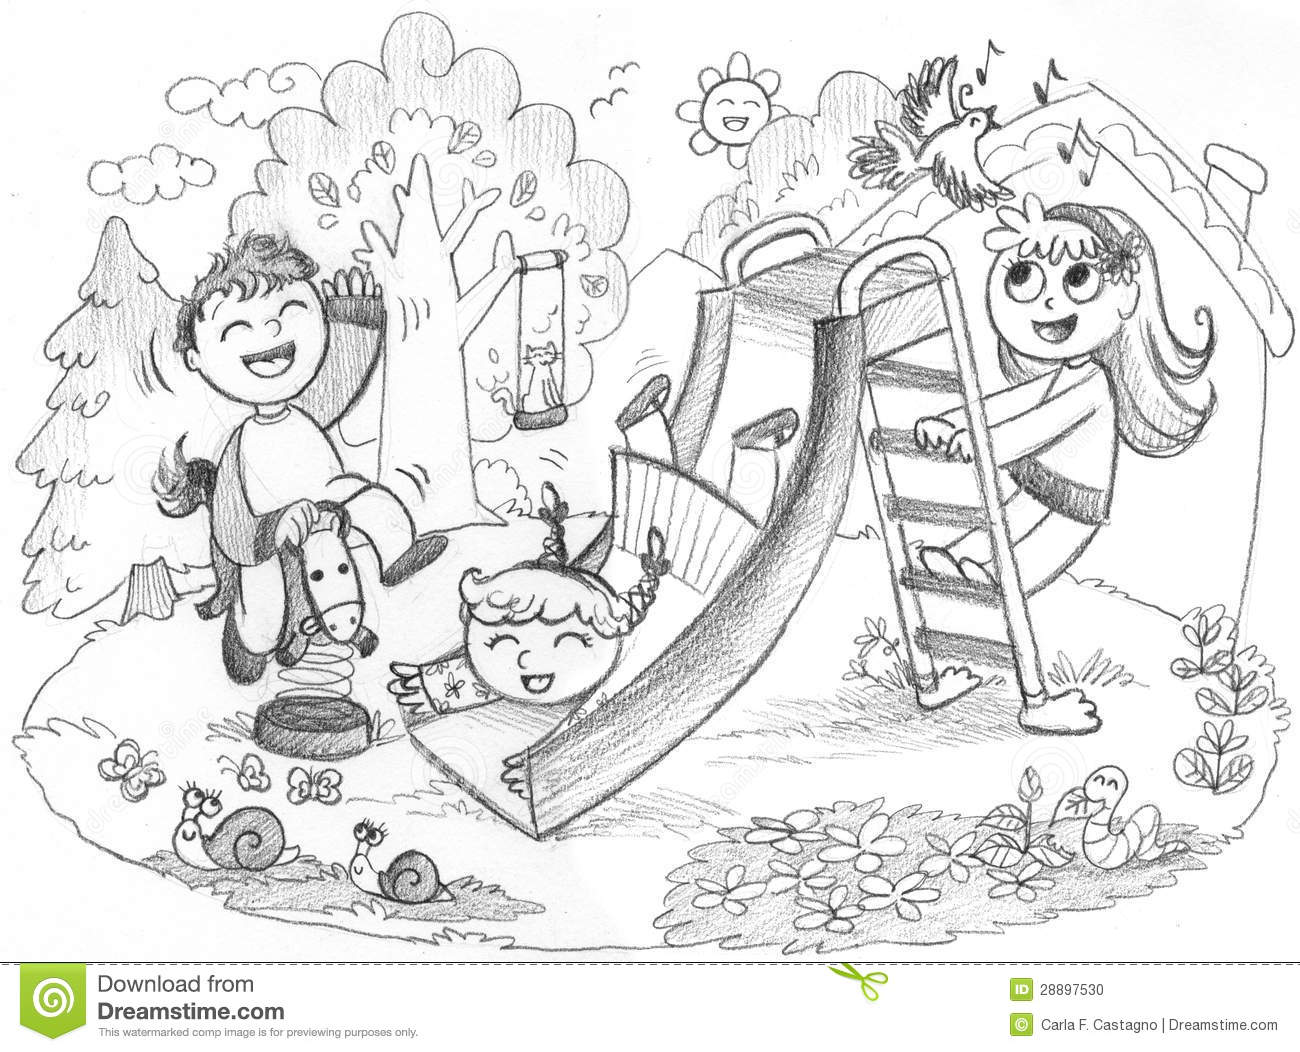 ... happy children playing together. Grey pencil hand drawn illustration